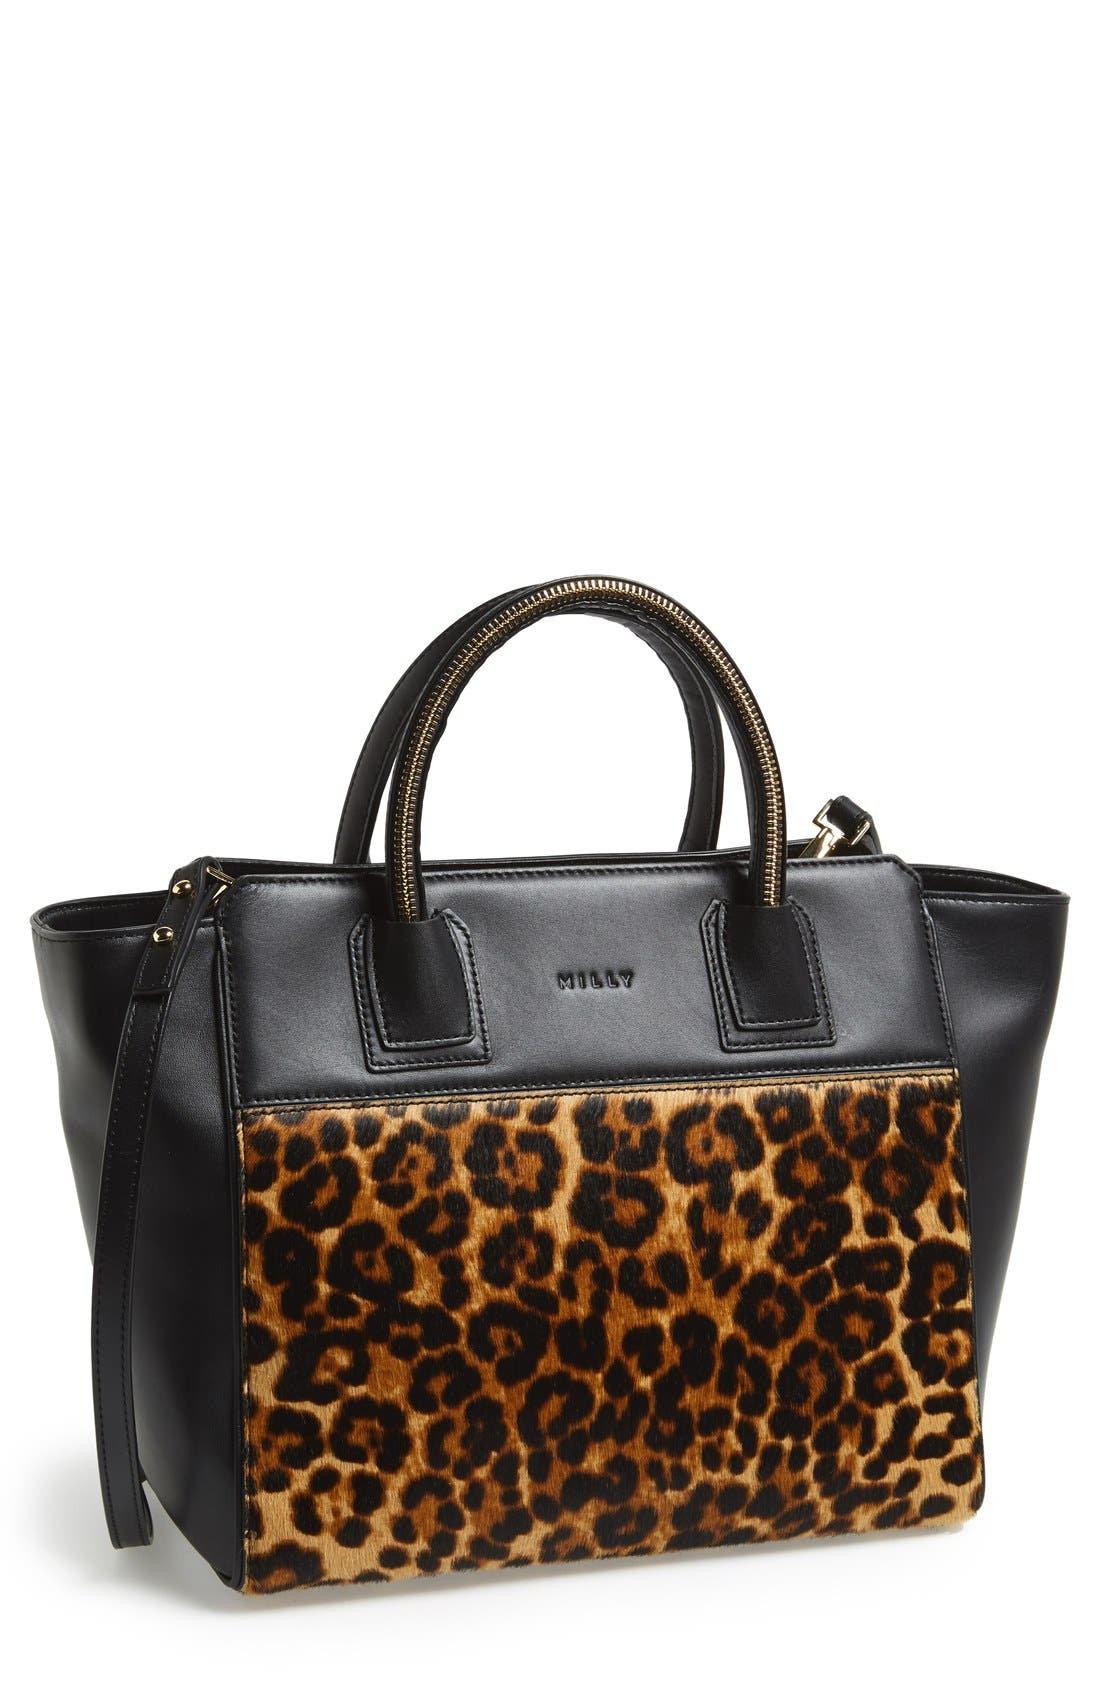 Alternate Image 1 Selected - Milly 'Large Logan' Tote